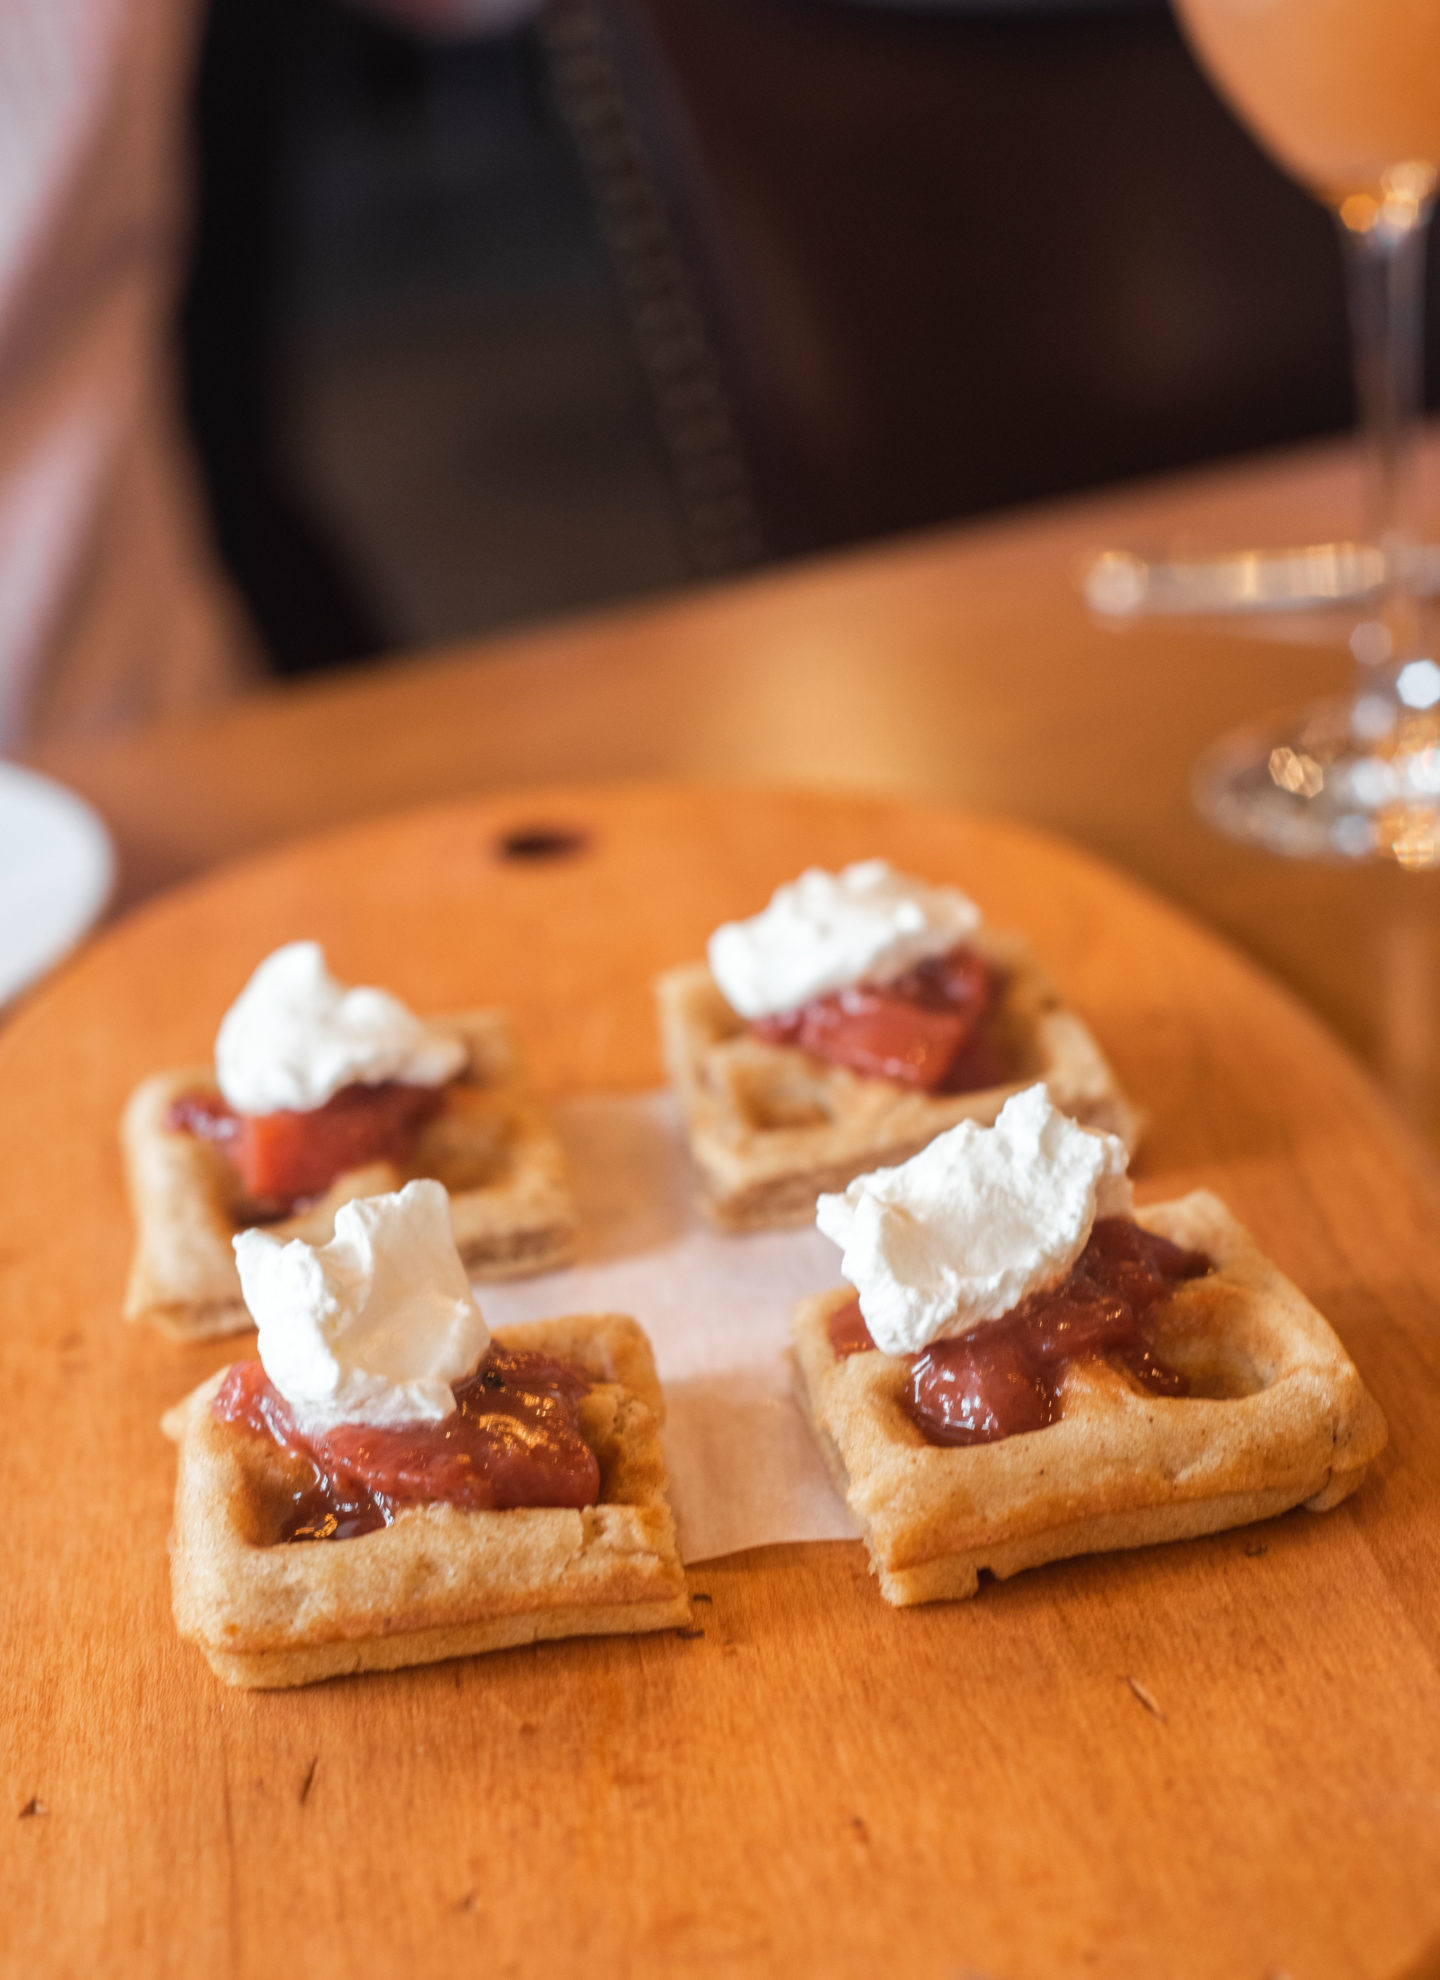 Mini Belgian Waffles, which came with strawberry compote and vanilla whipped cream.